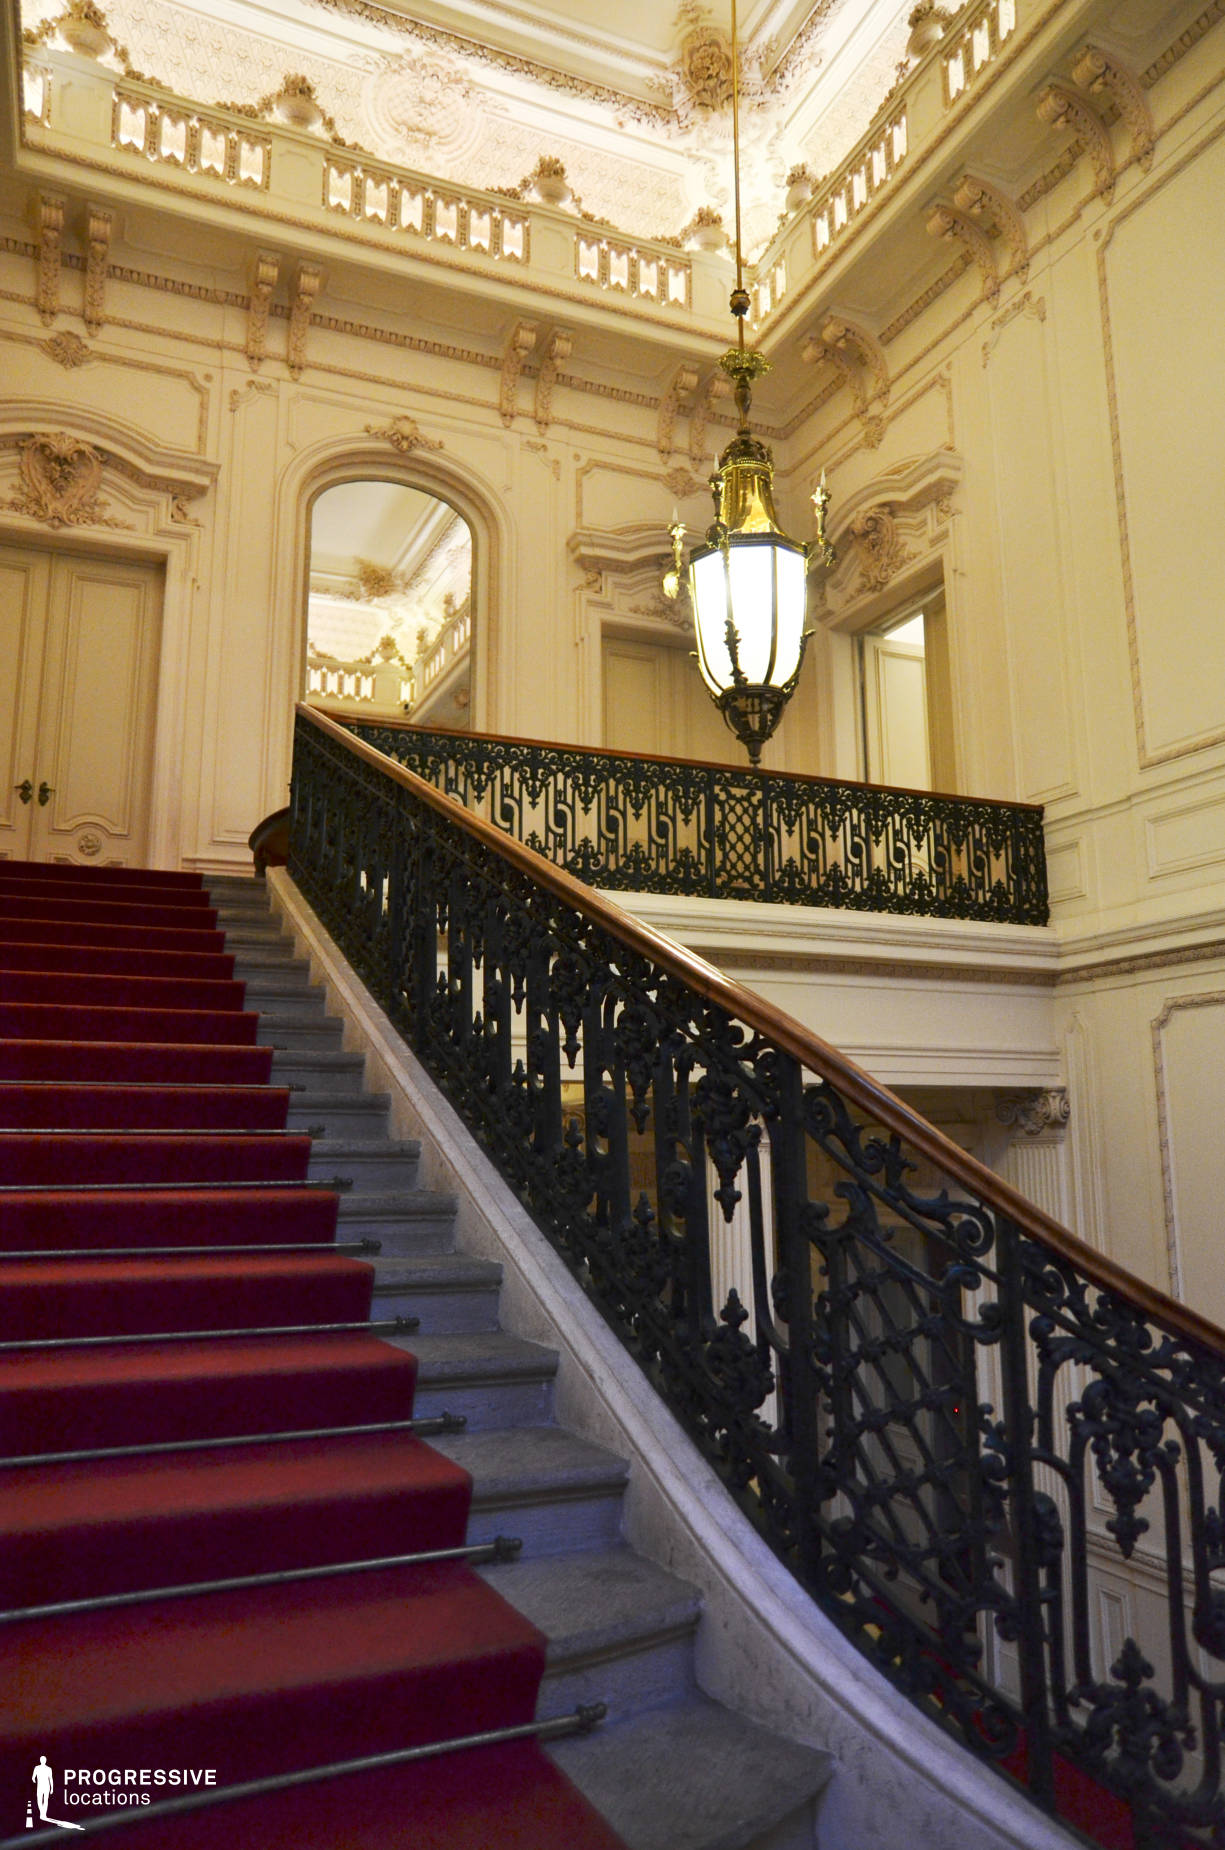 Locations in Hungary: Staircase, Festetics City Palace